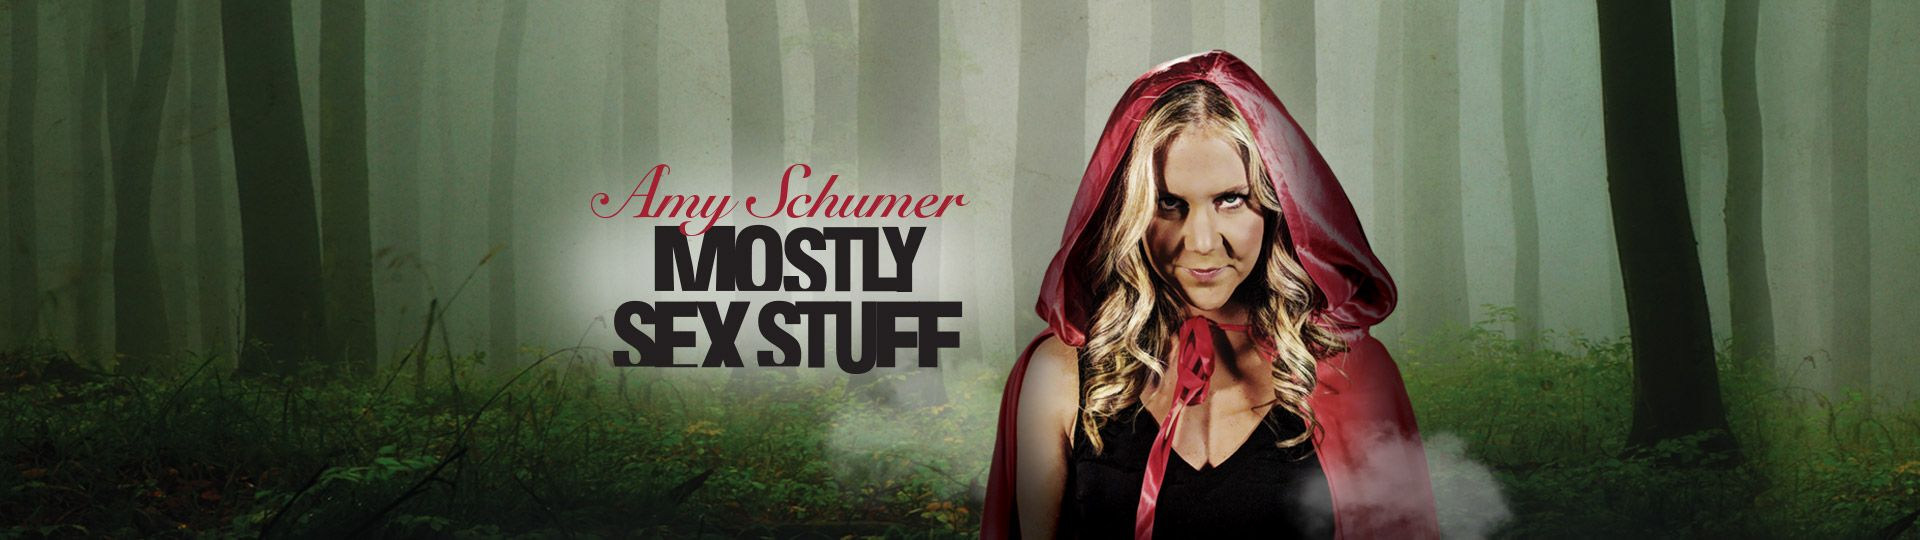 amy schumer mostly sex stuff full video For all your video, music and game streaming  needs  Check out the complete list of new titles below: SVOD Exclusives  Amy  Schumer: Mostly Sex Stuff - Mar 25.